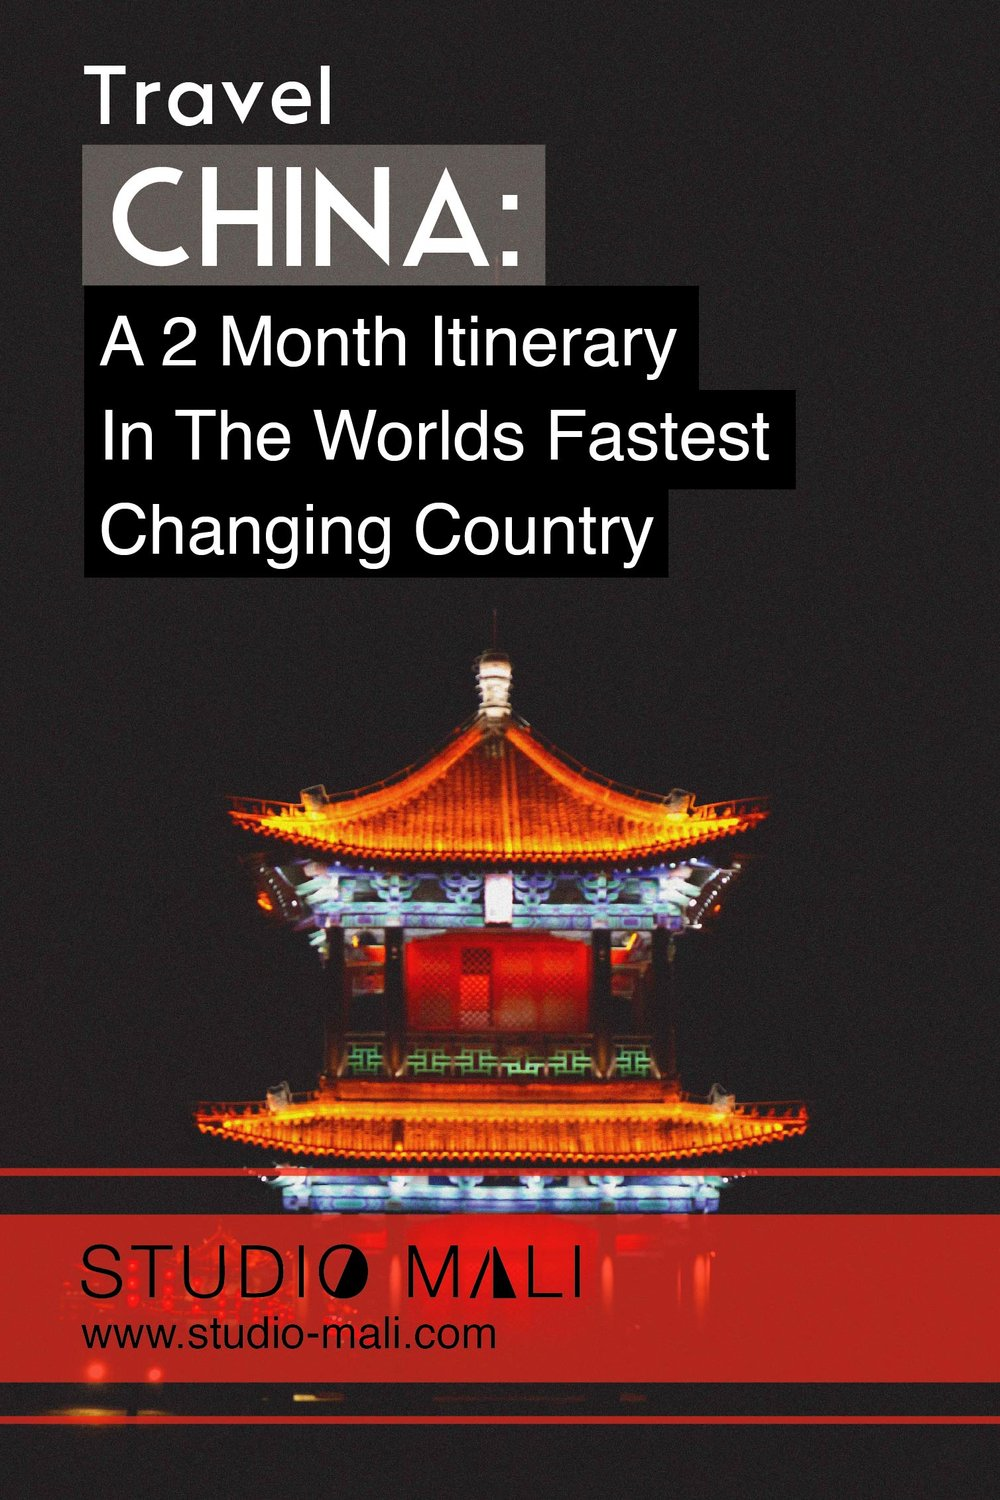 China - A 2 Month Itinerary In The Worlds Fastest Changing Country, By Studio Mali